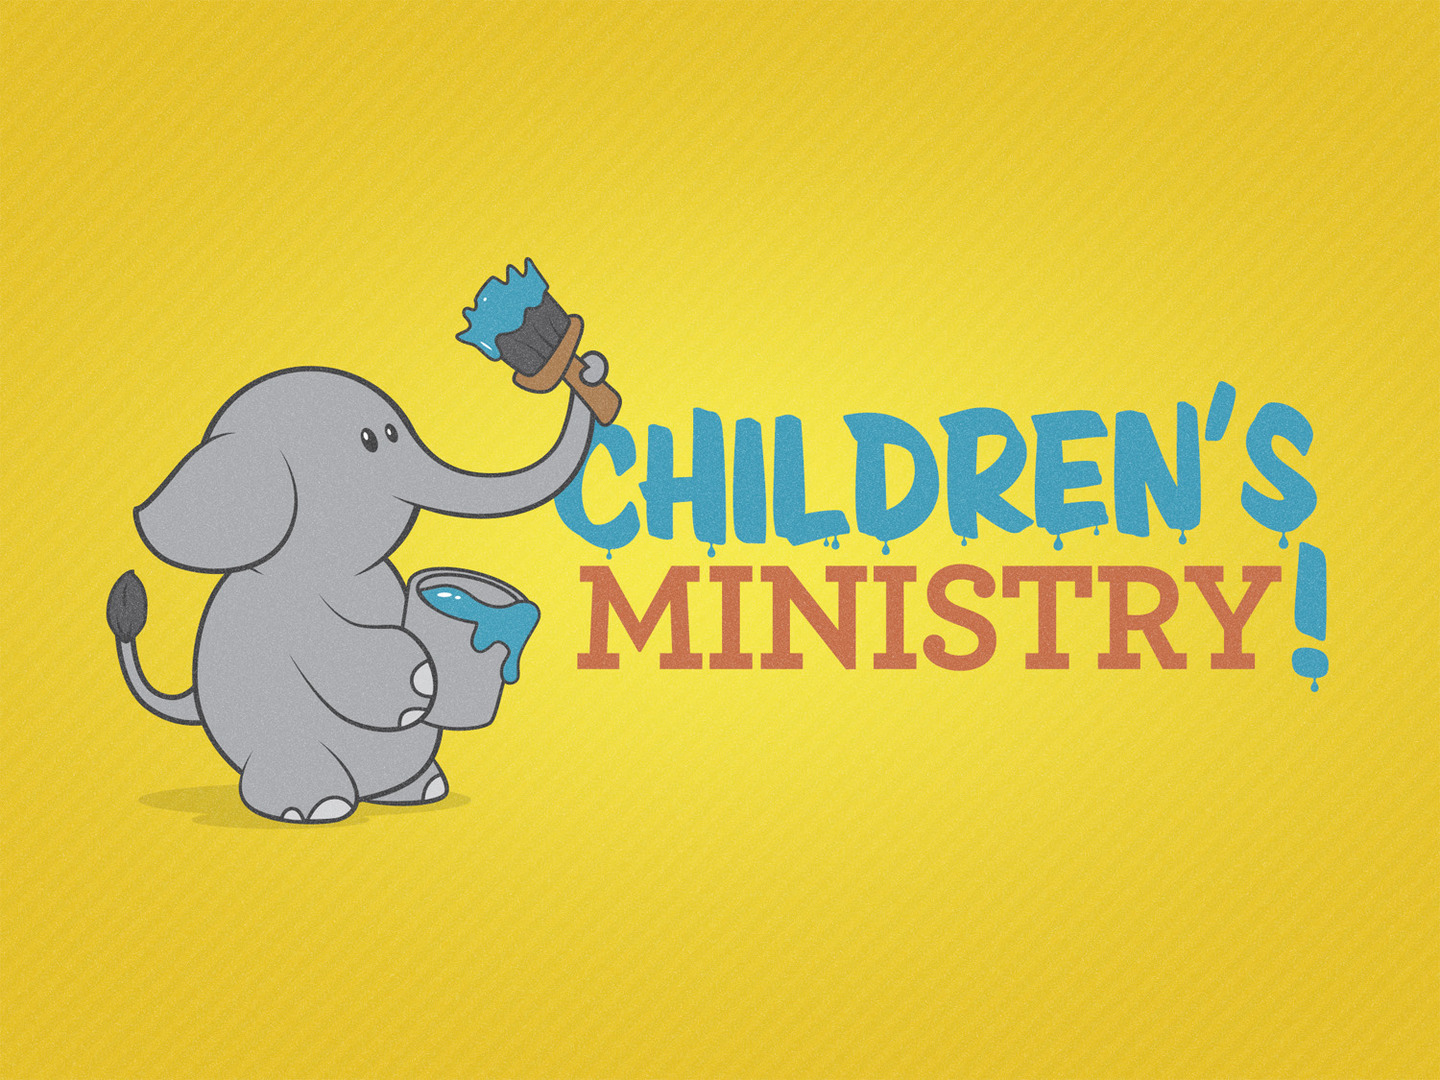 children_s_ministry-title-2-still-4x3